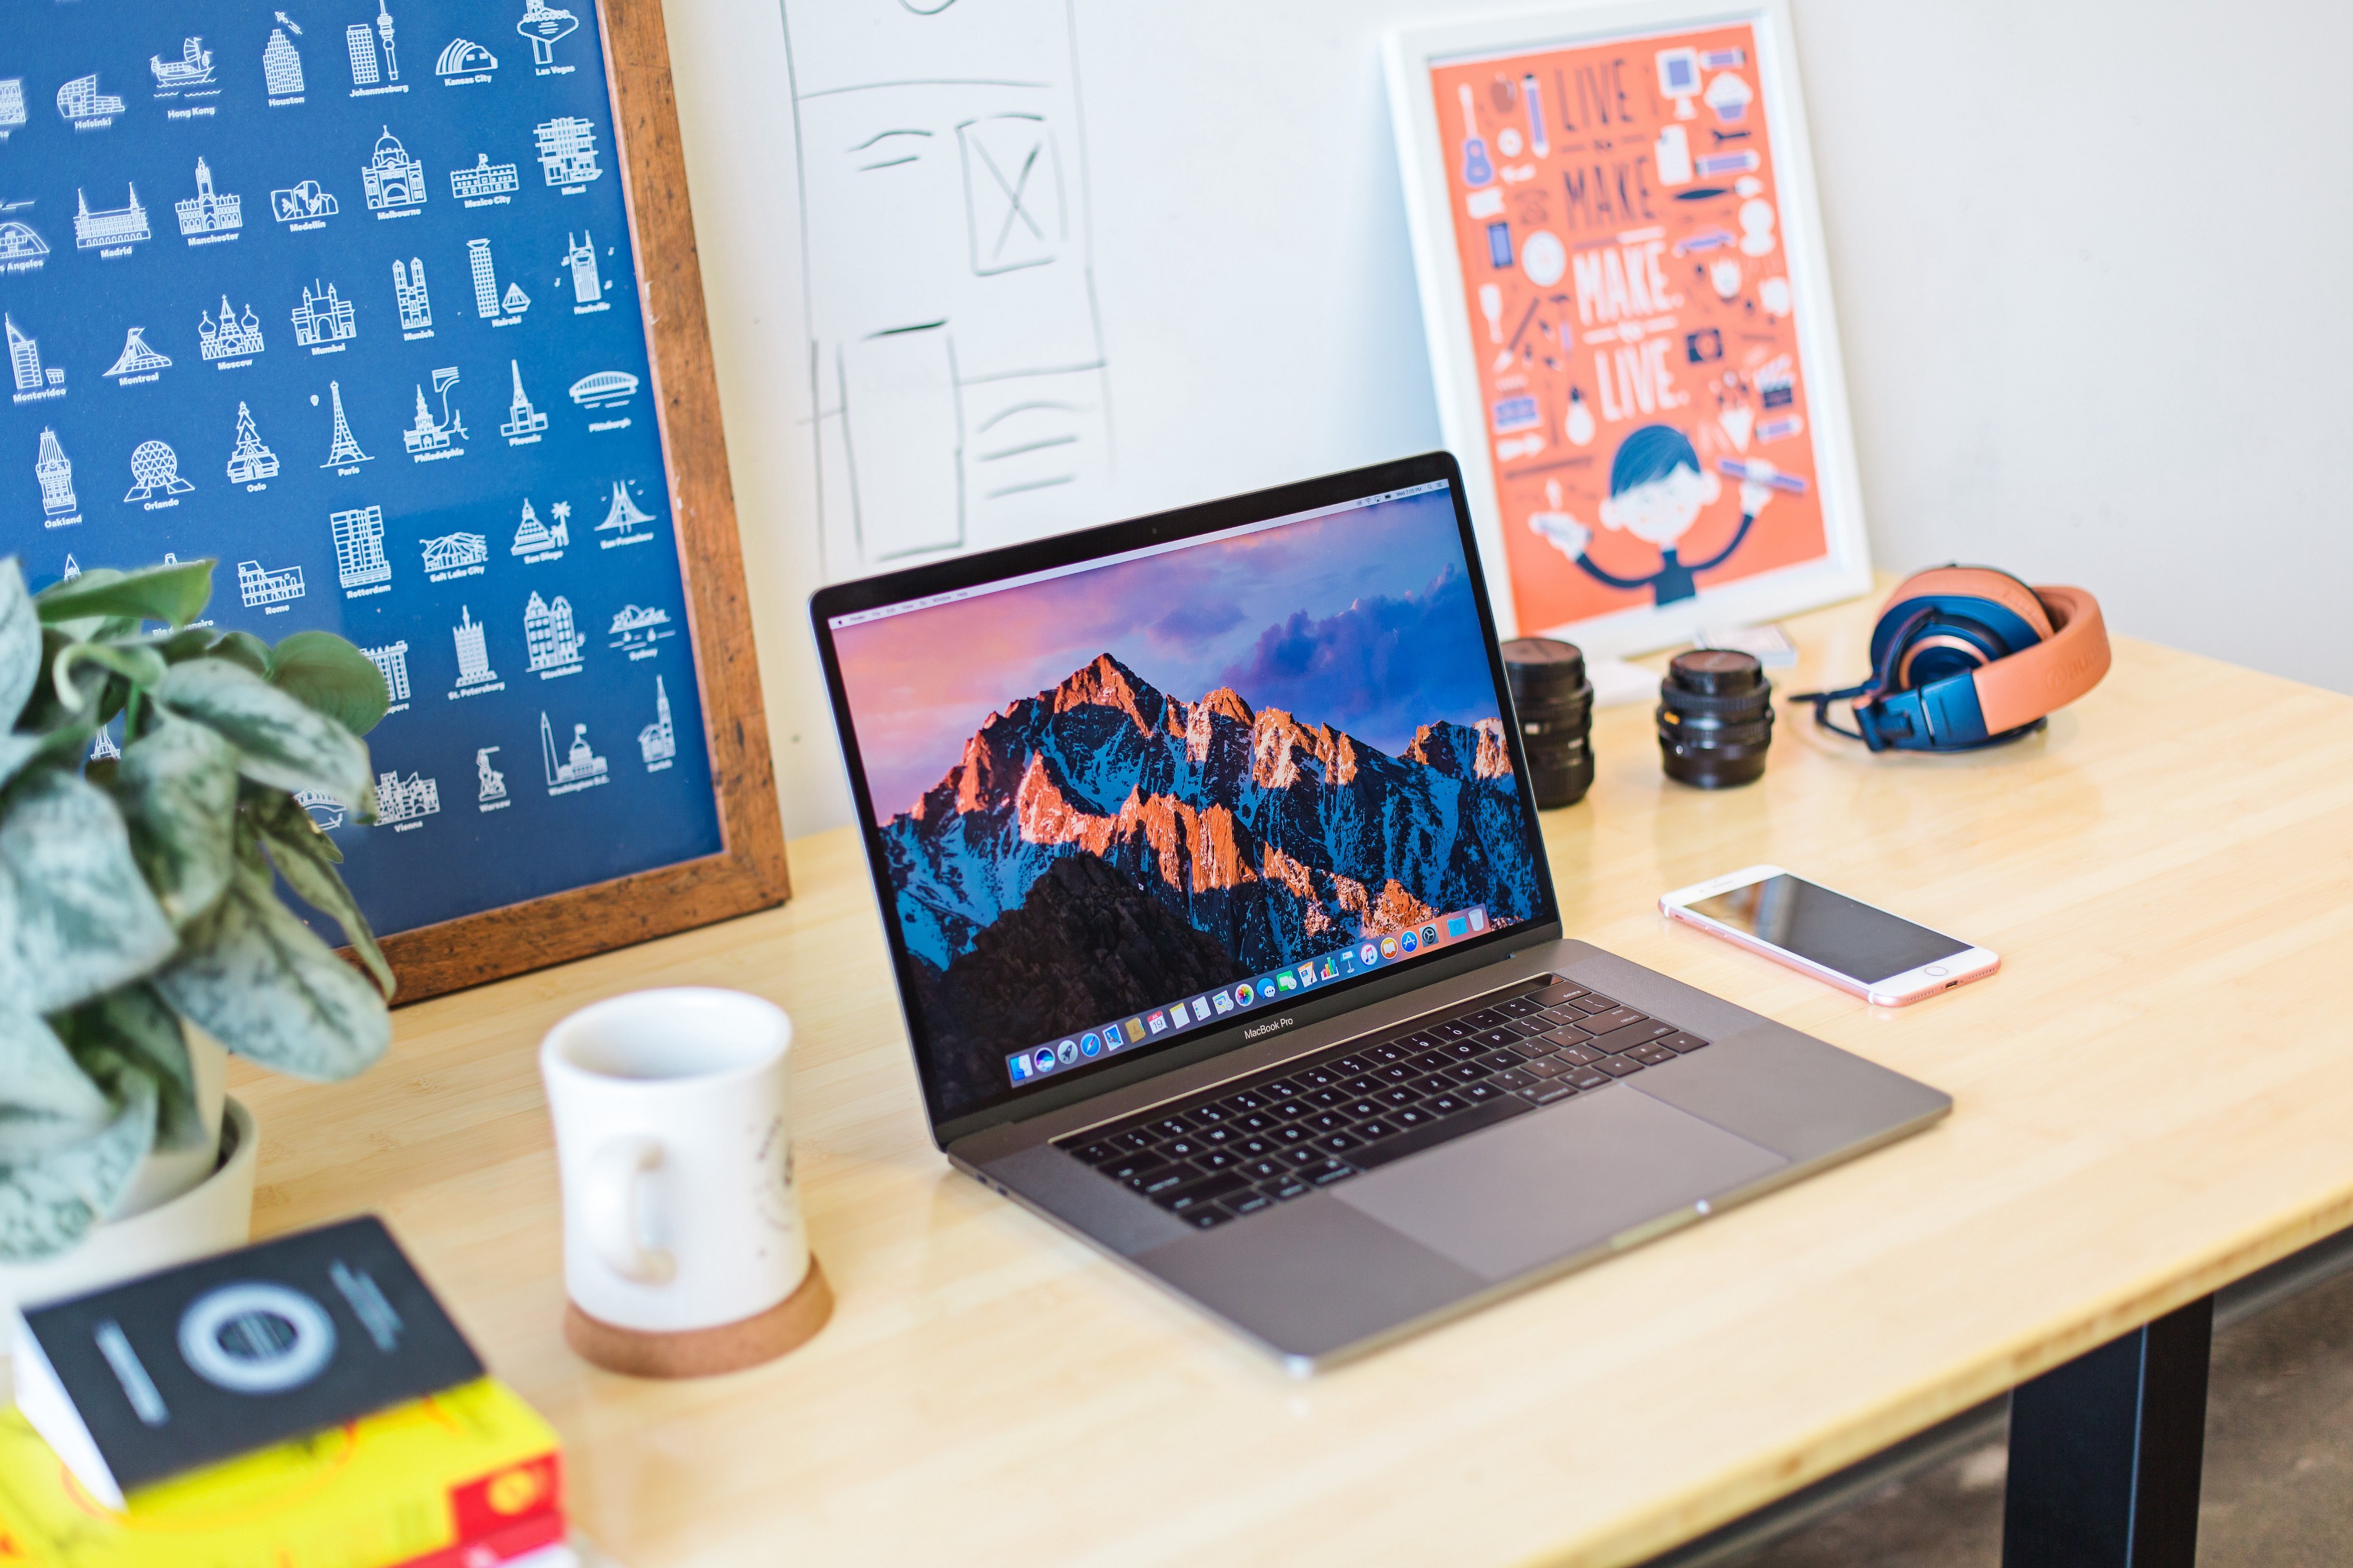 Benefits of having a clean work space  by Chomwa Shikati  What